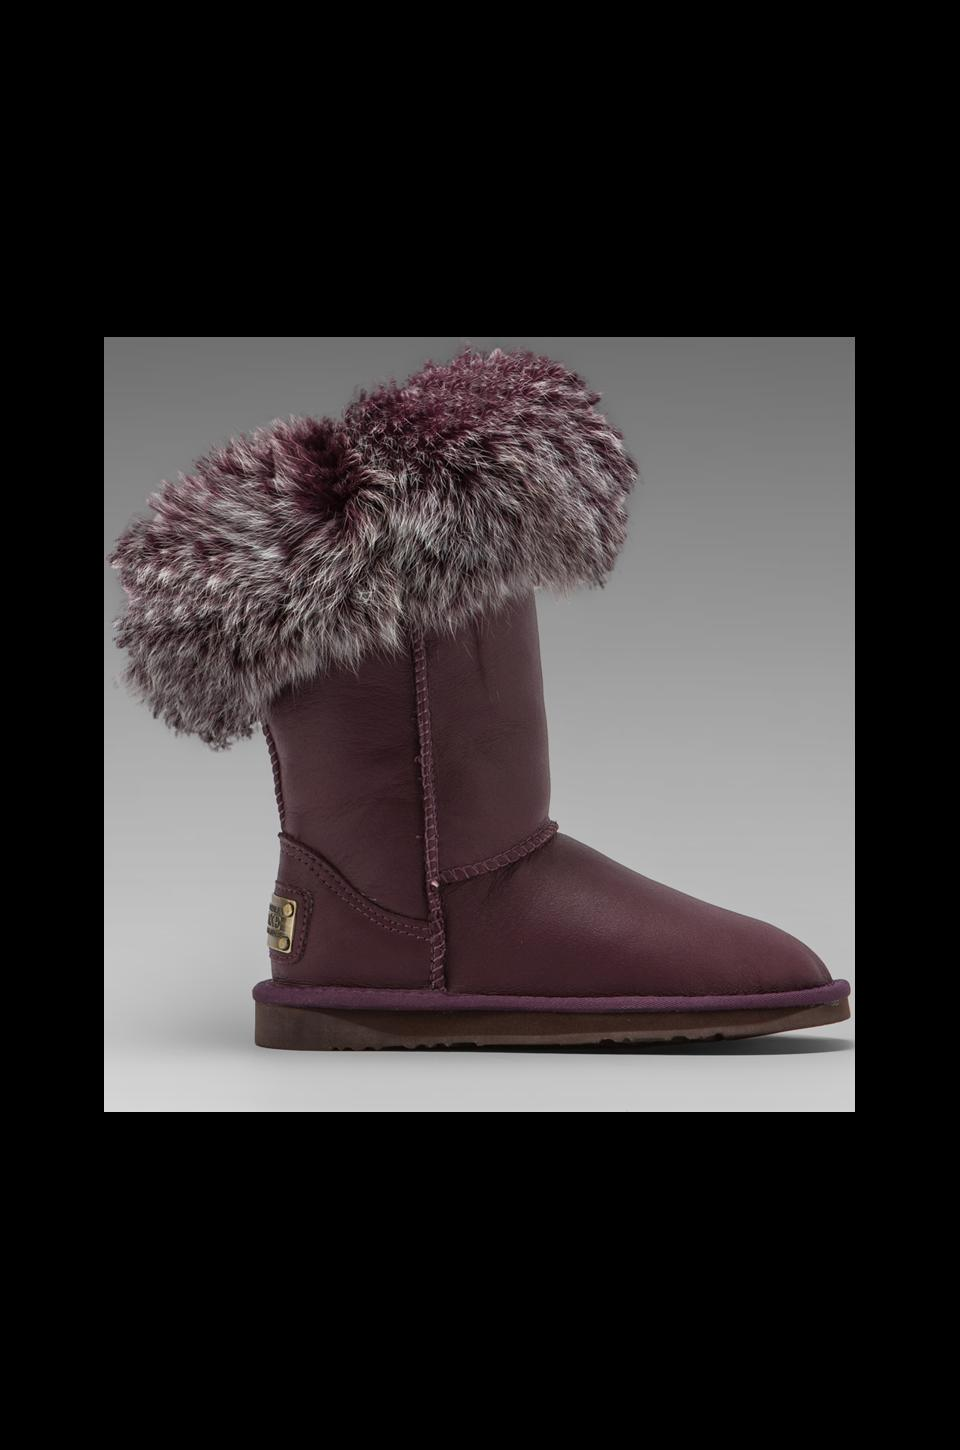 Australia Luxe Collective Foxy Short Boot with Raccoon Fur Trim in Plum